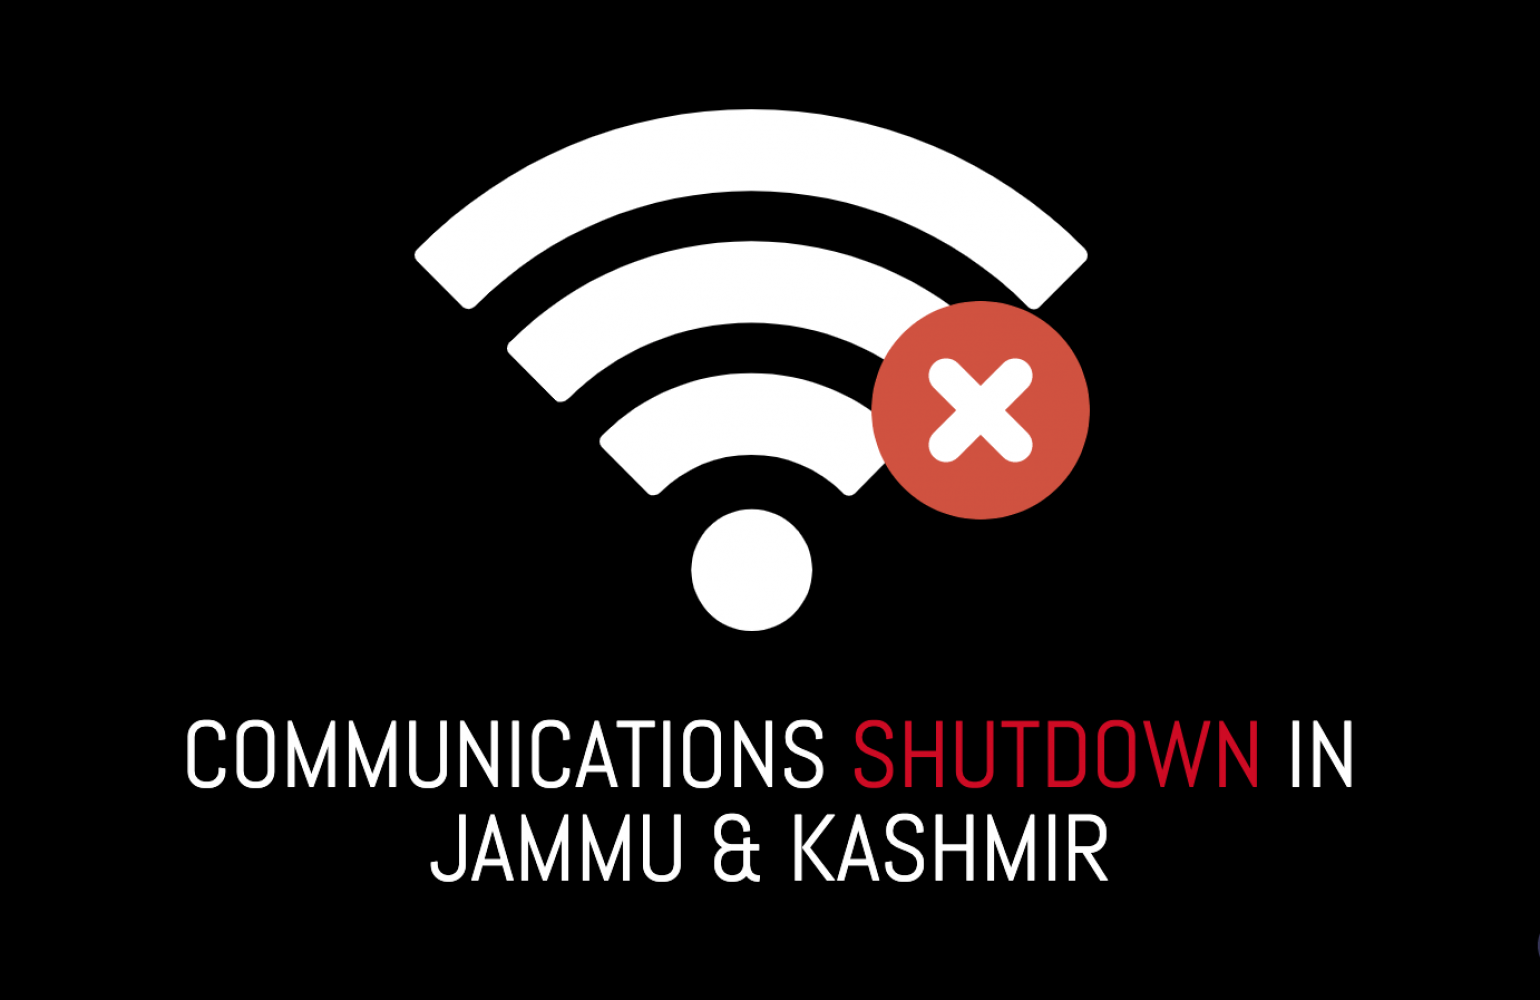 Association for Progressive Communications & Media Matters for Democracy condemns the shutdown of communications in Jammu & Kashmir